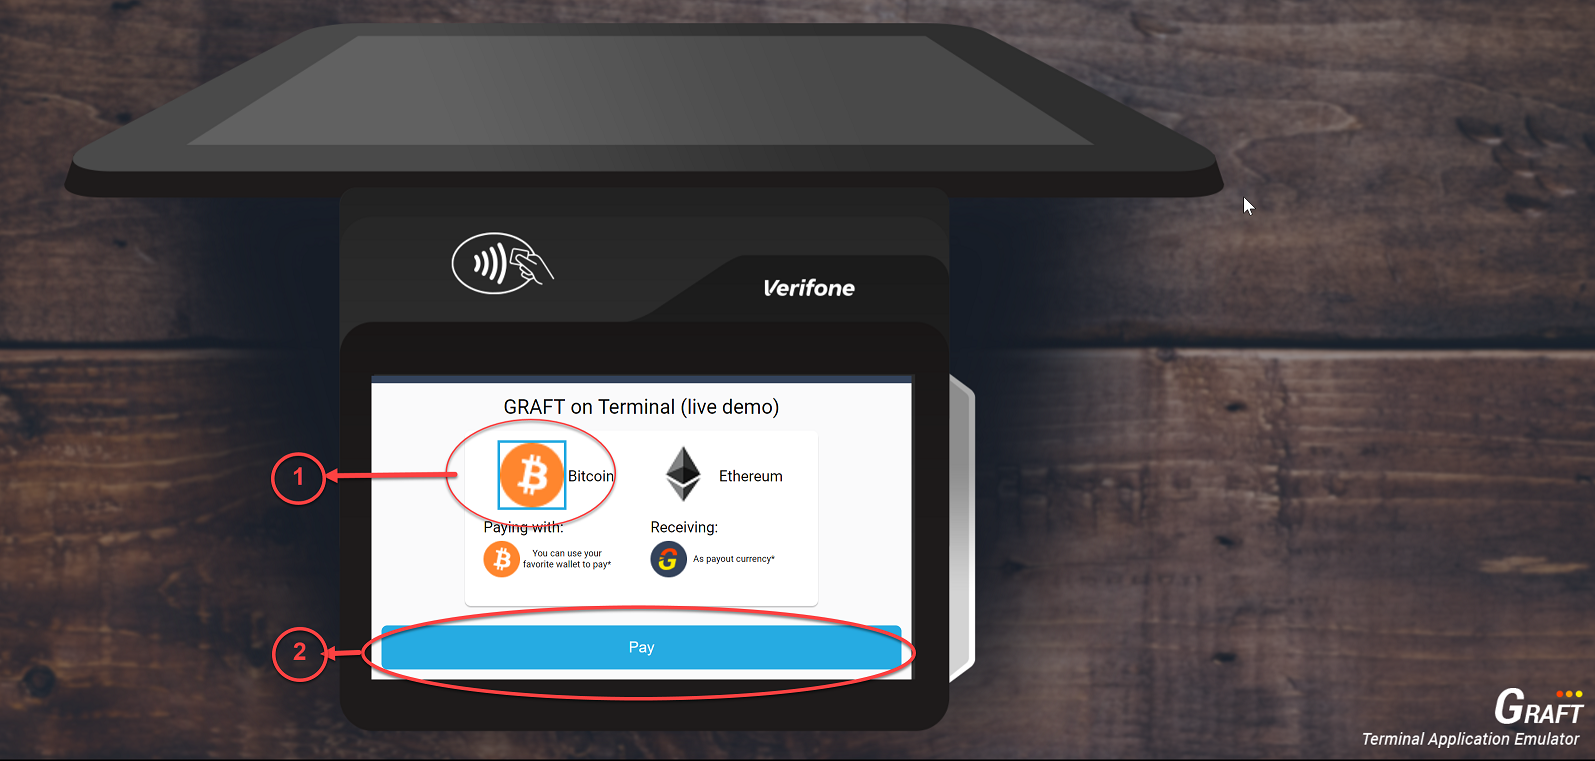 GRAFT NETWORK Announces the Release of the Pay-In Exchange Broker Component for Verifone Payment Terminals 1